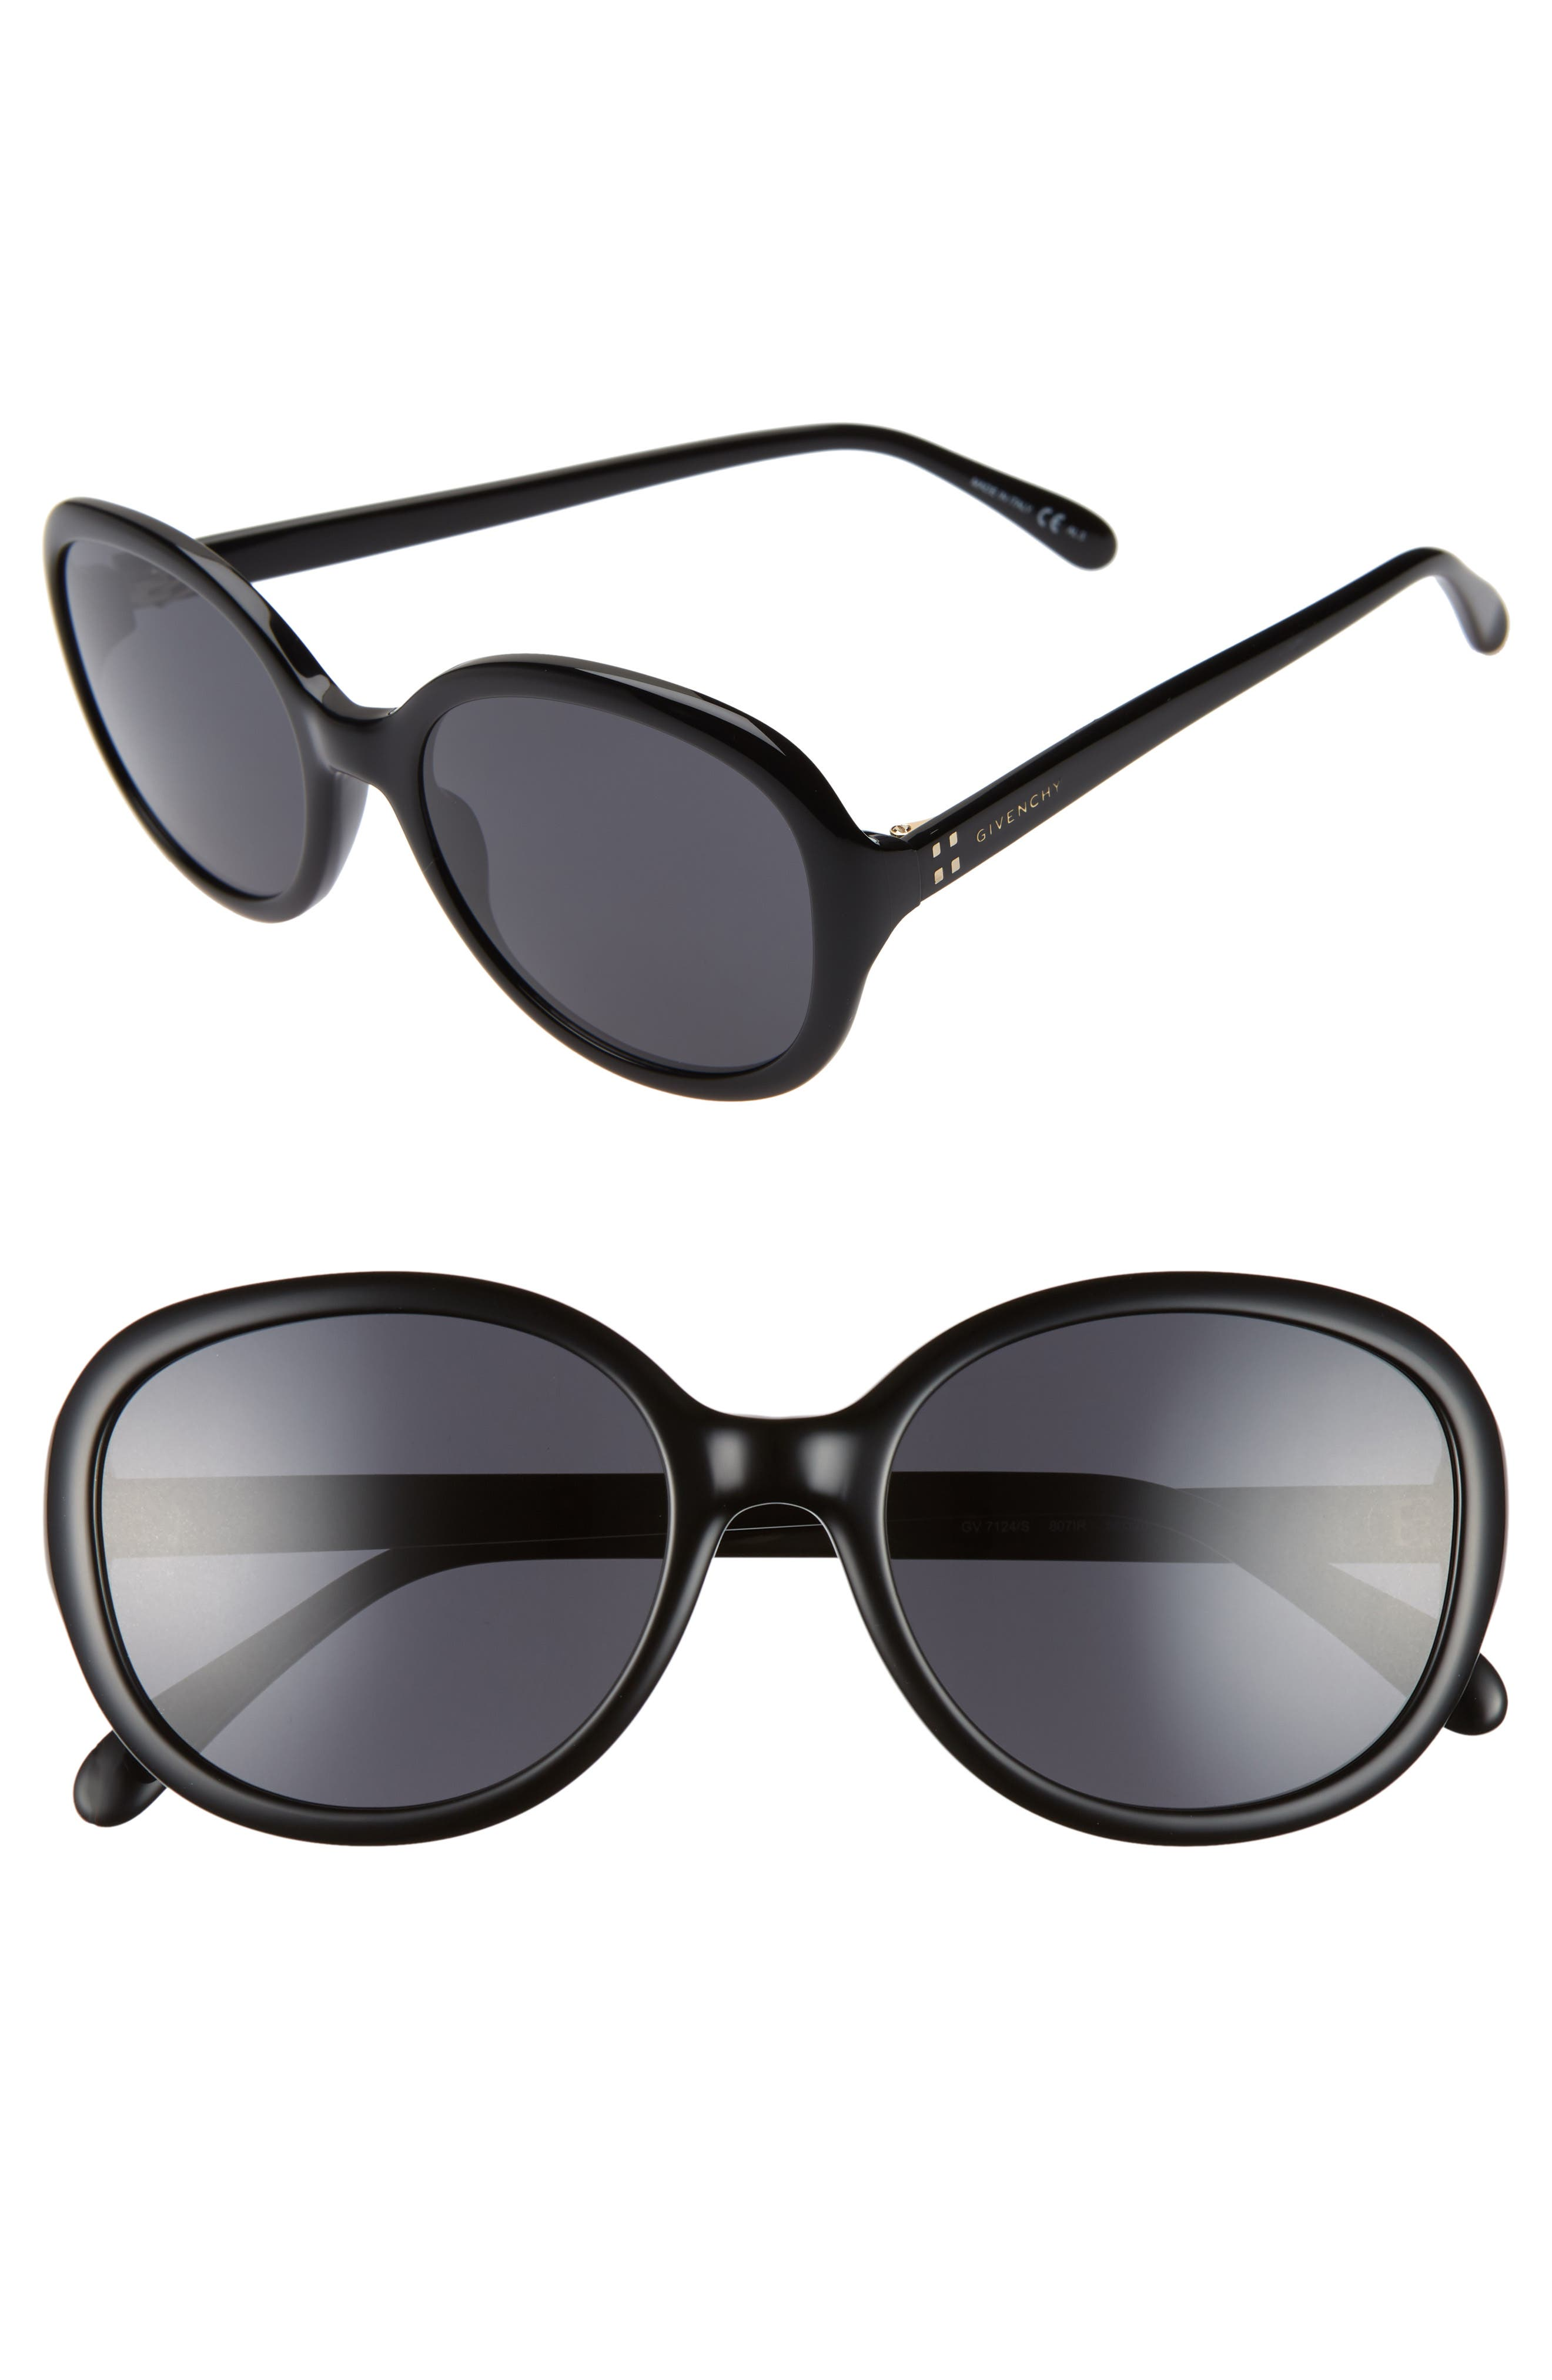 1960s Sunglasses | 70s Sunglasses, 70s Glasses Givenchy 56mm Round Sunglasses Size One Size - Black at Nordstrom Rack $119.97 AT vintagedancer.com